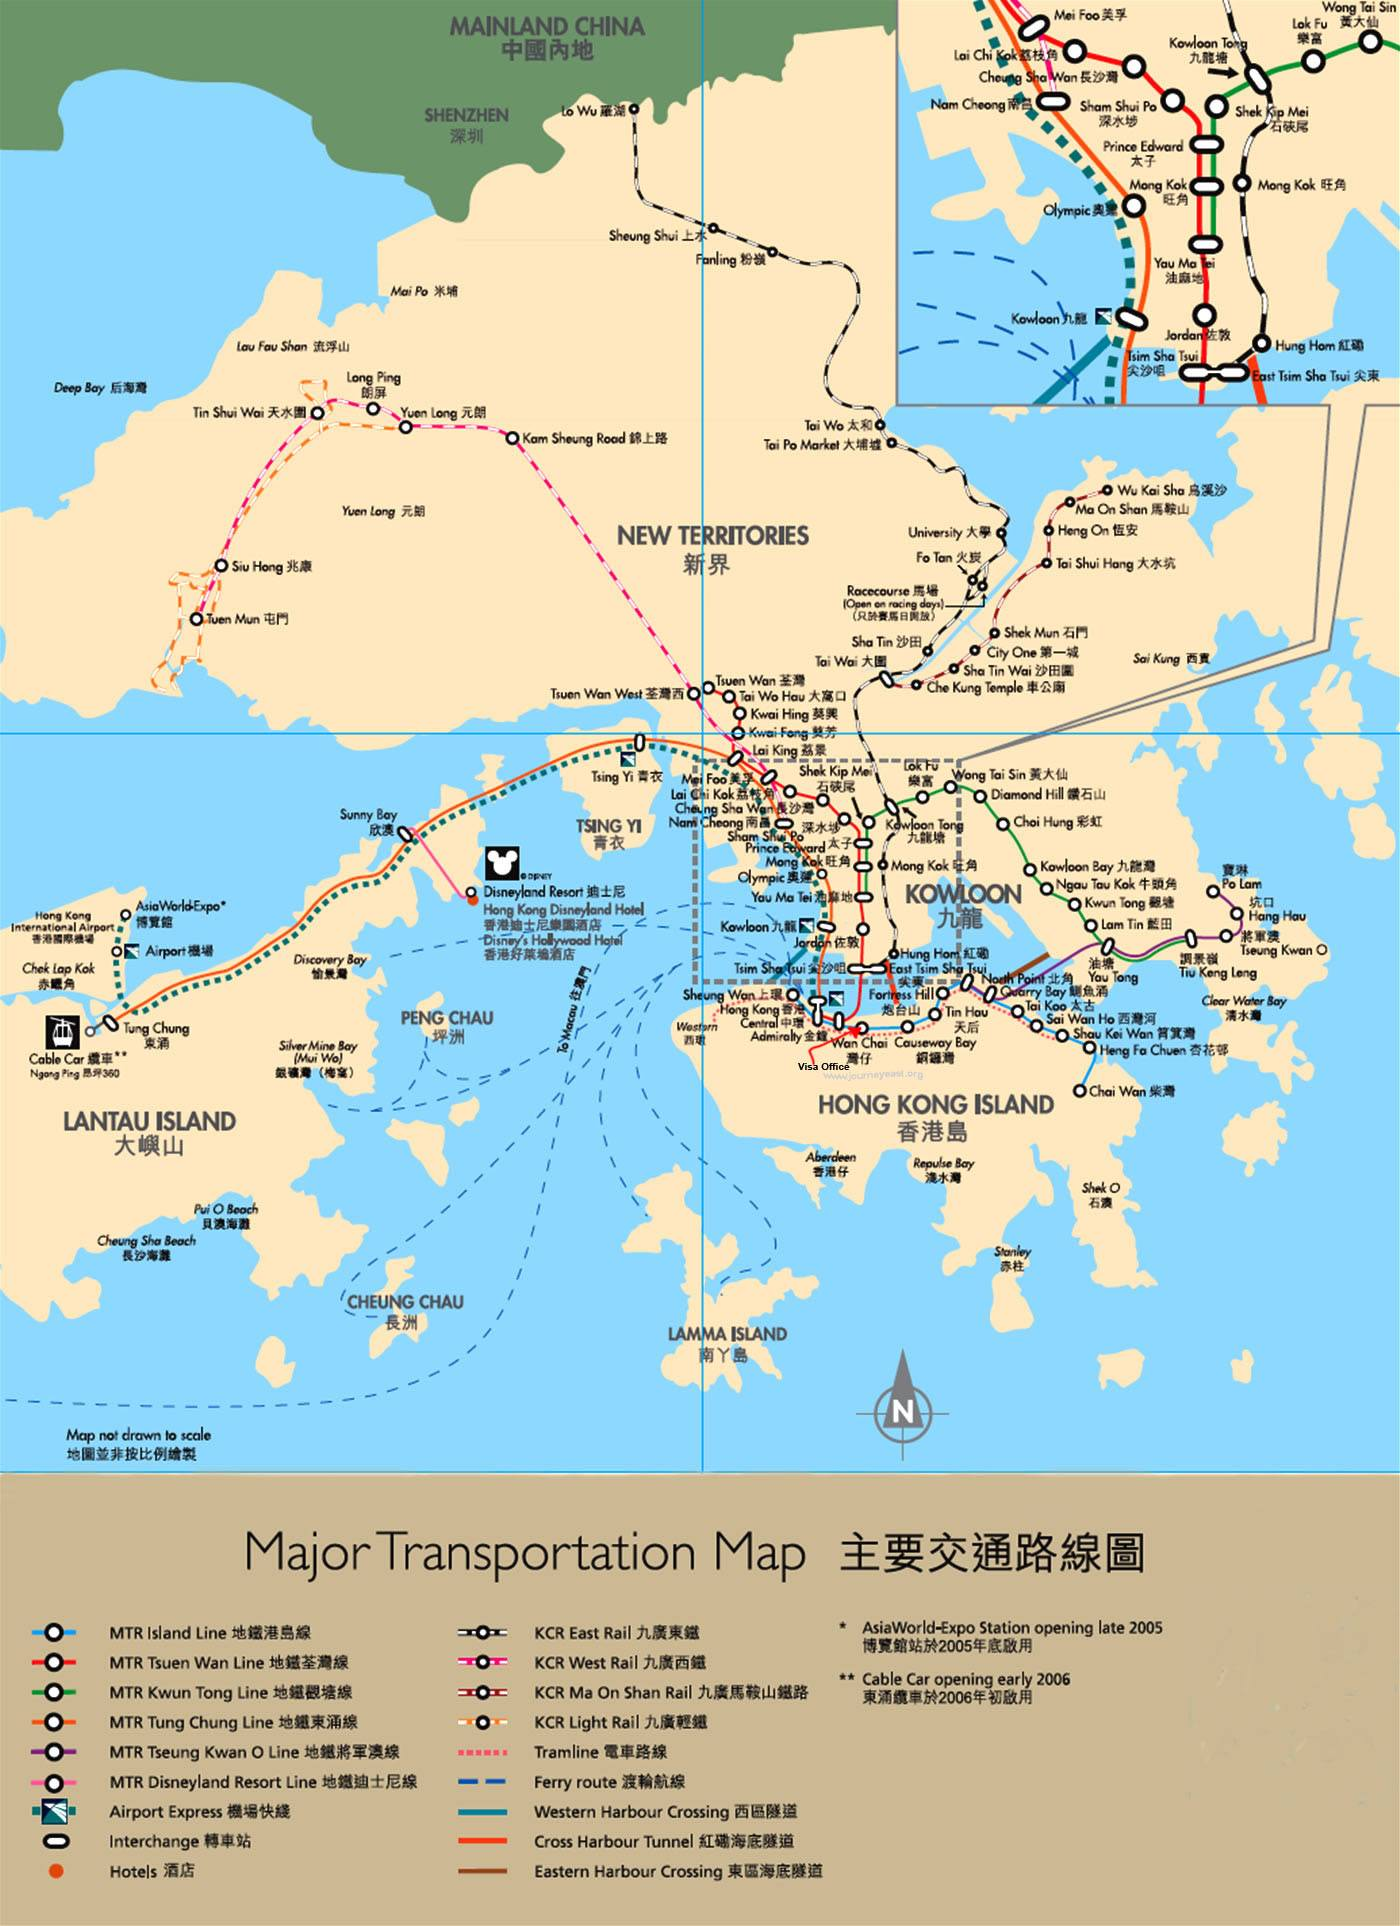 Shenzhen travel maps 2010 2011 printable metro subway shenzhen transportation maps shenzhen metro mtr map gumiabroncs Image collections